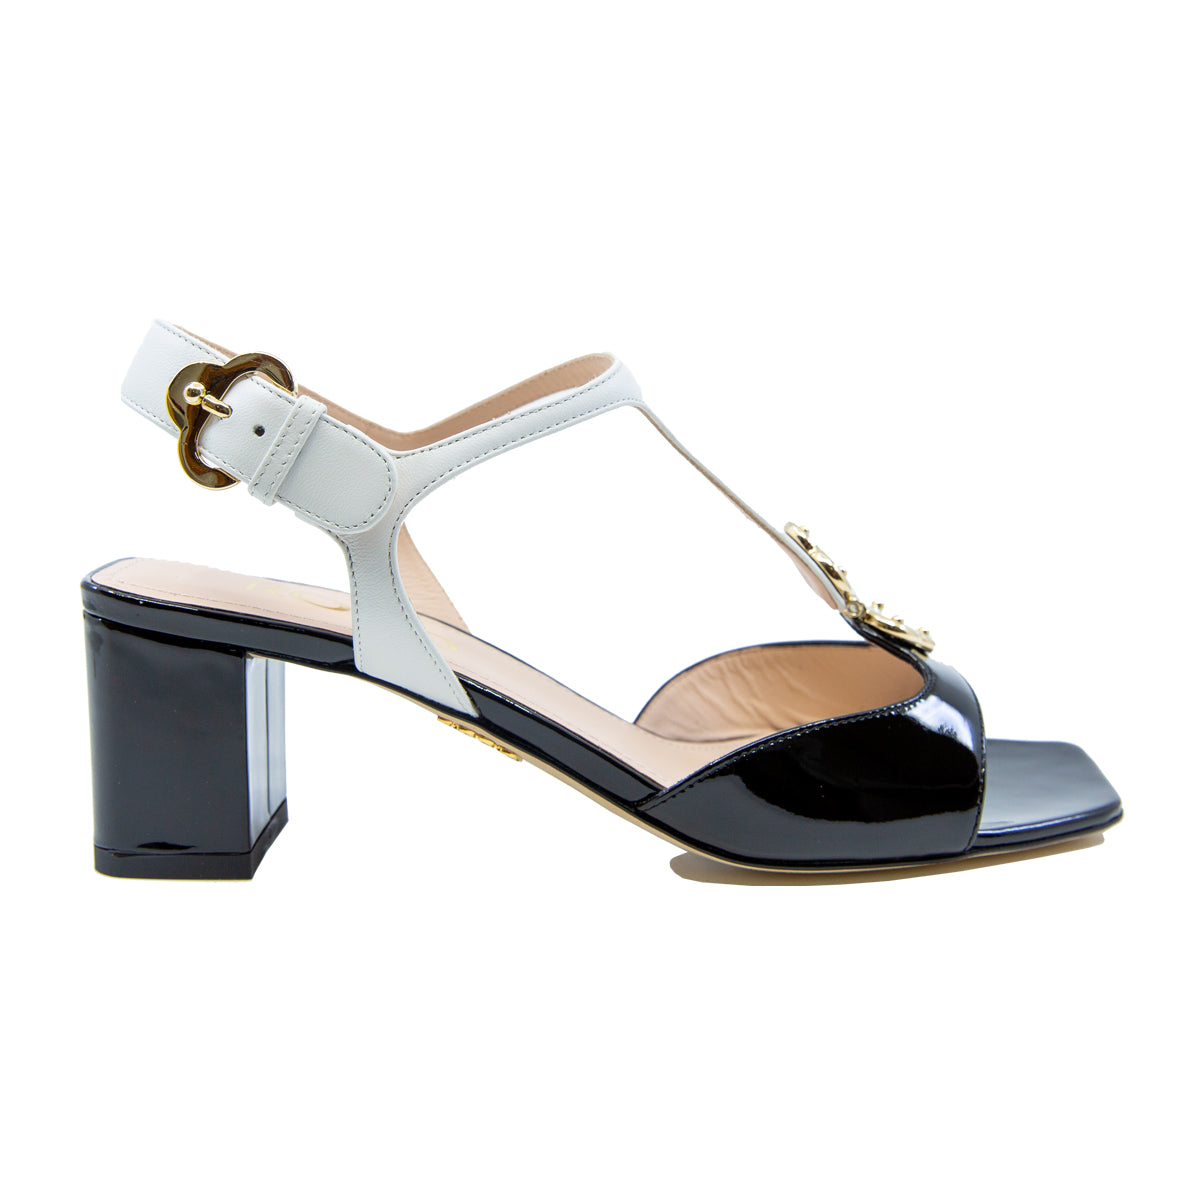 Two Tone Block Heel Sandals